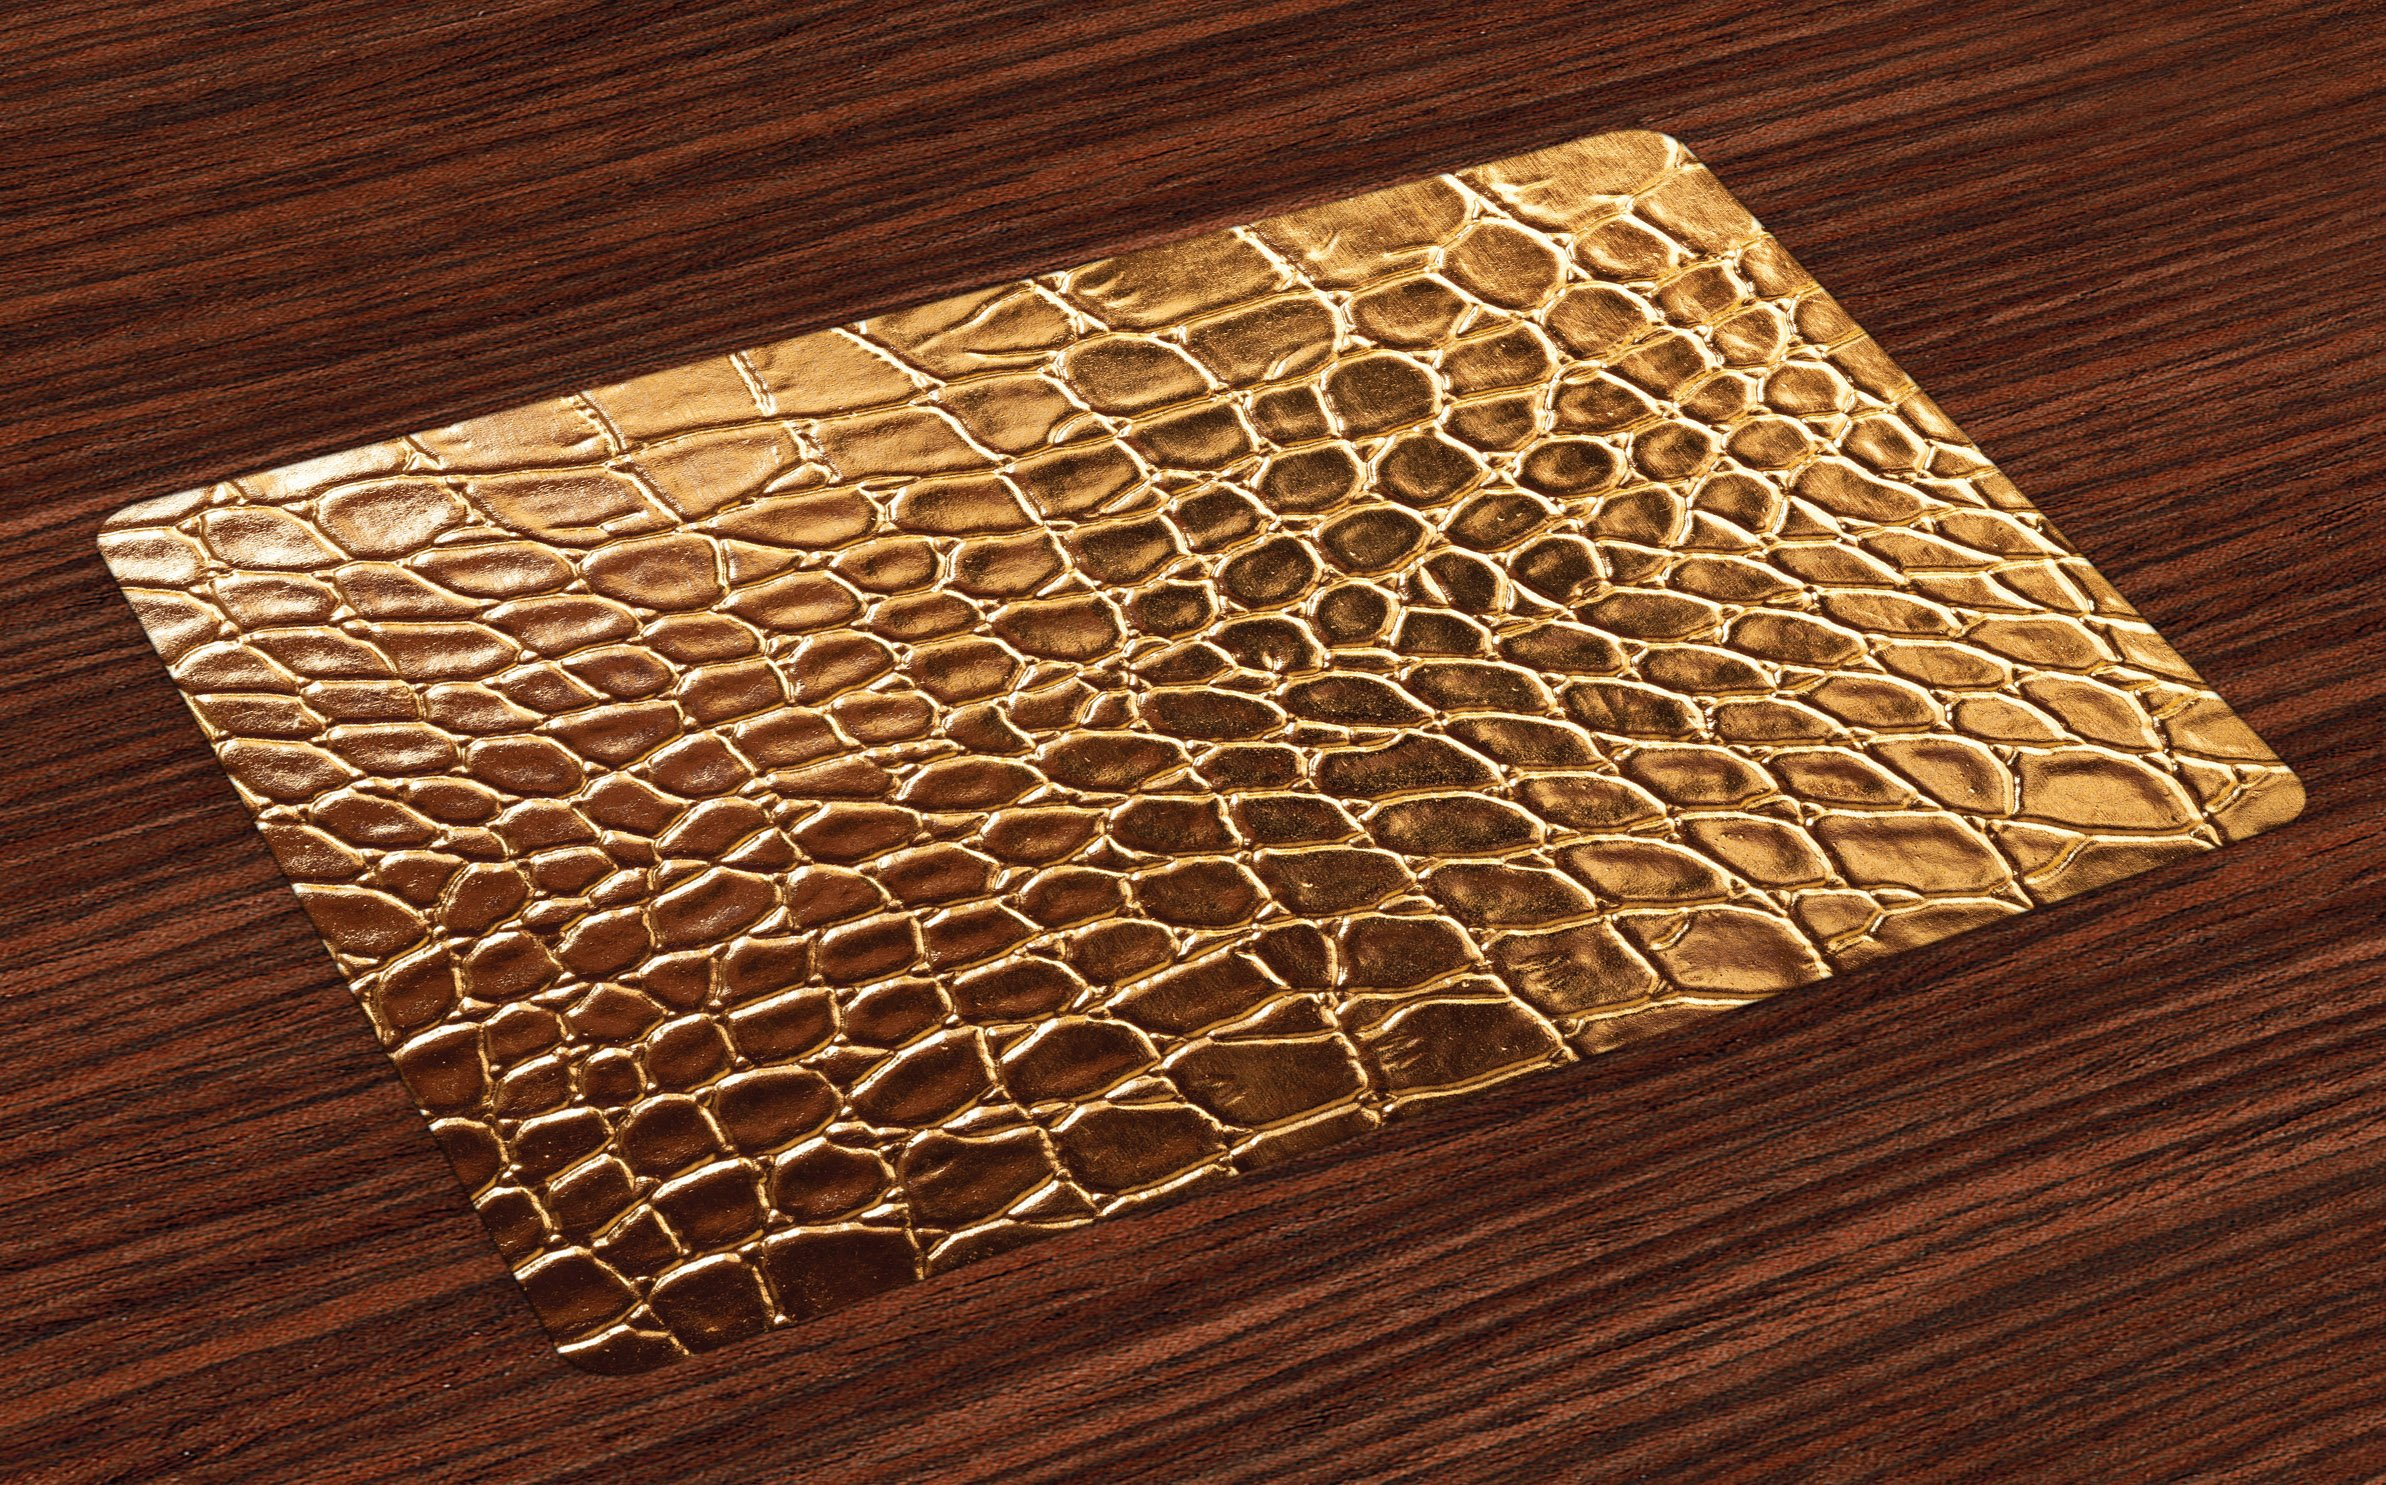 Lunarable Animal Print Place Mats Set of 4, Tint Golden Vivid Crocodile Skin Nature Life Toughness High-End Design Artwork, Washable Fabric Placemats for Dining Room Kitchen Table Decor, Gold Brown